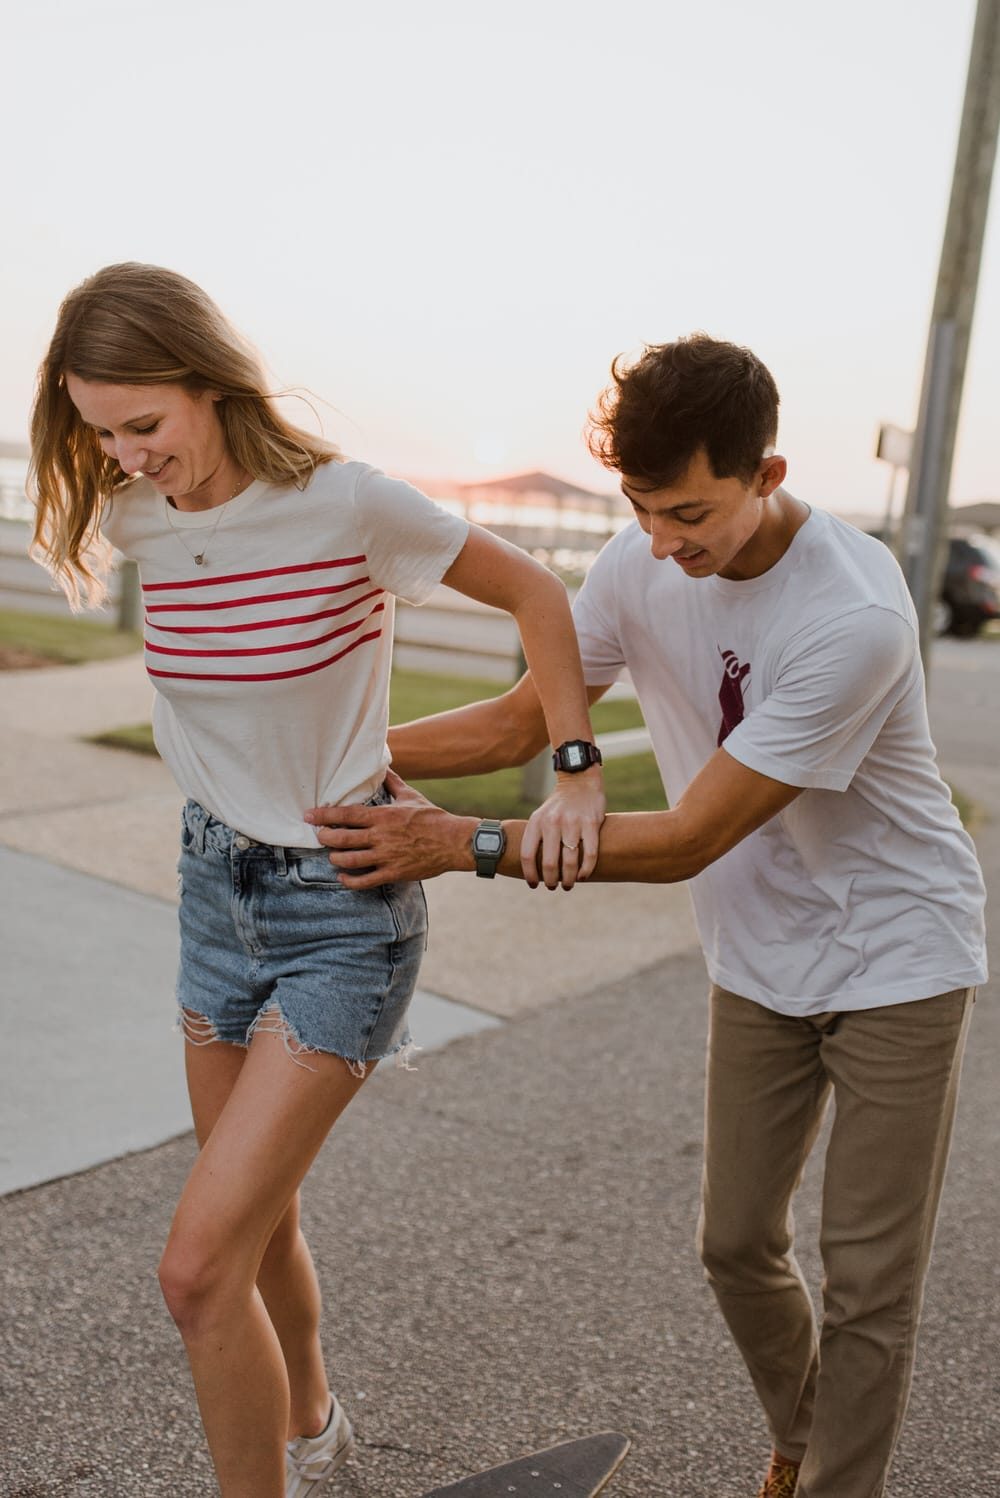 a boy helping a girl skate